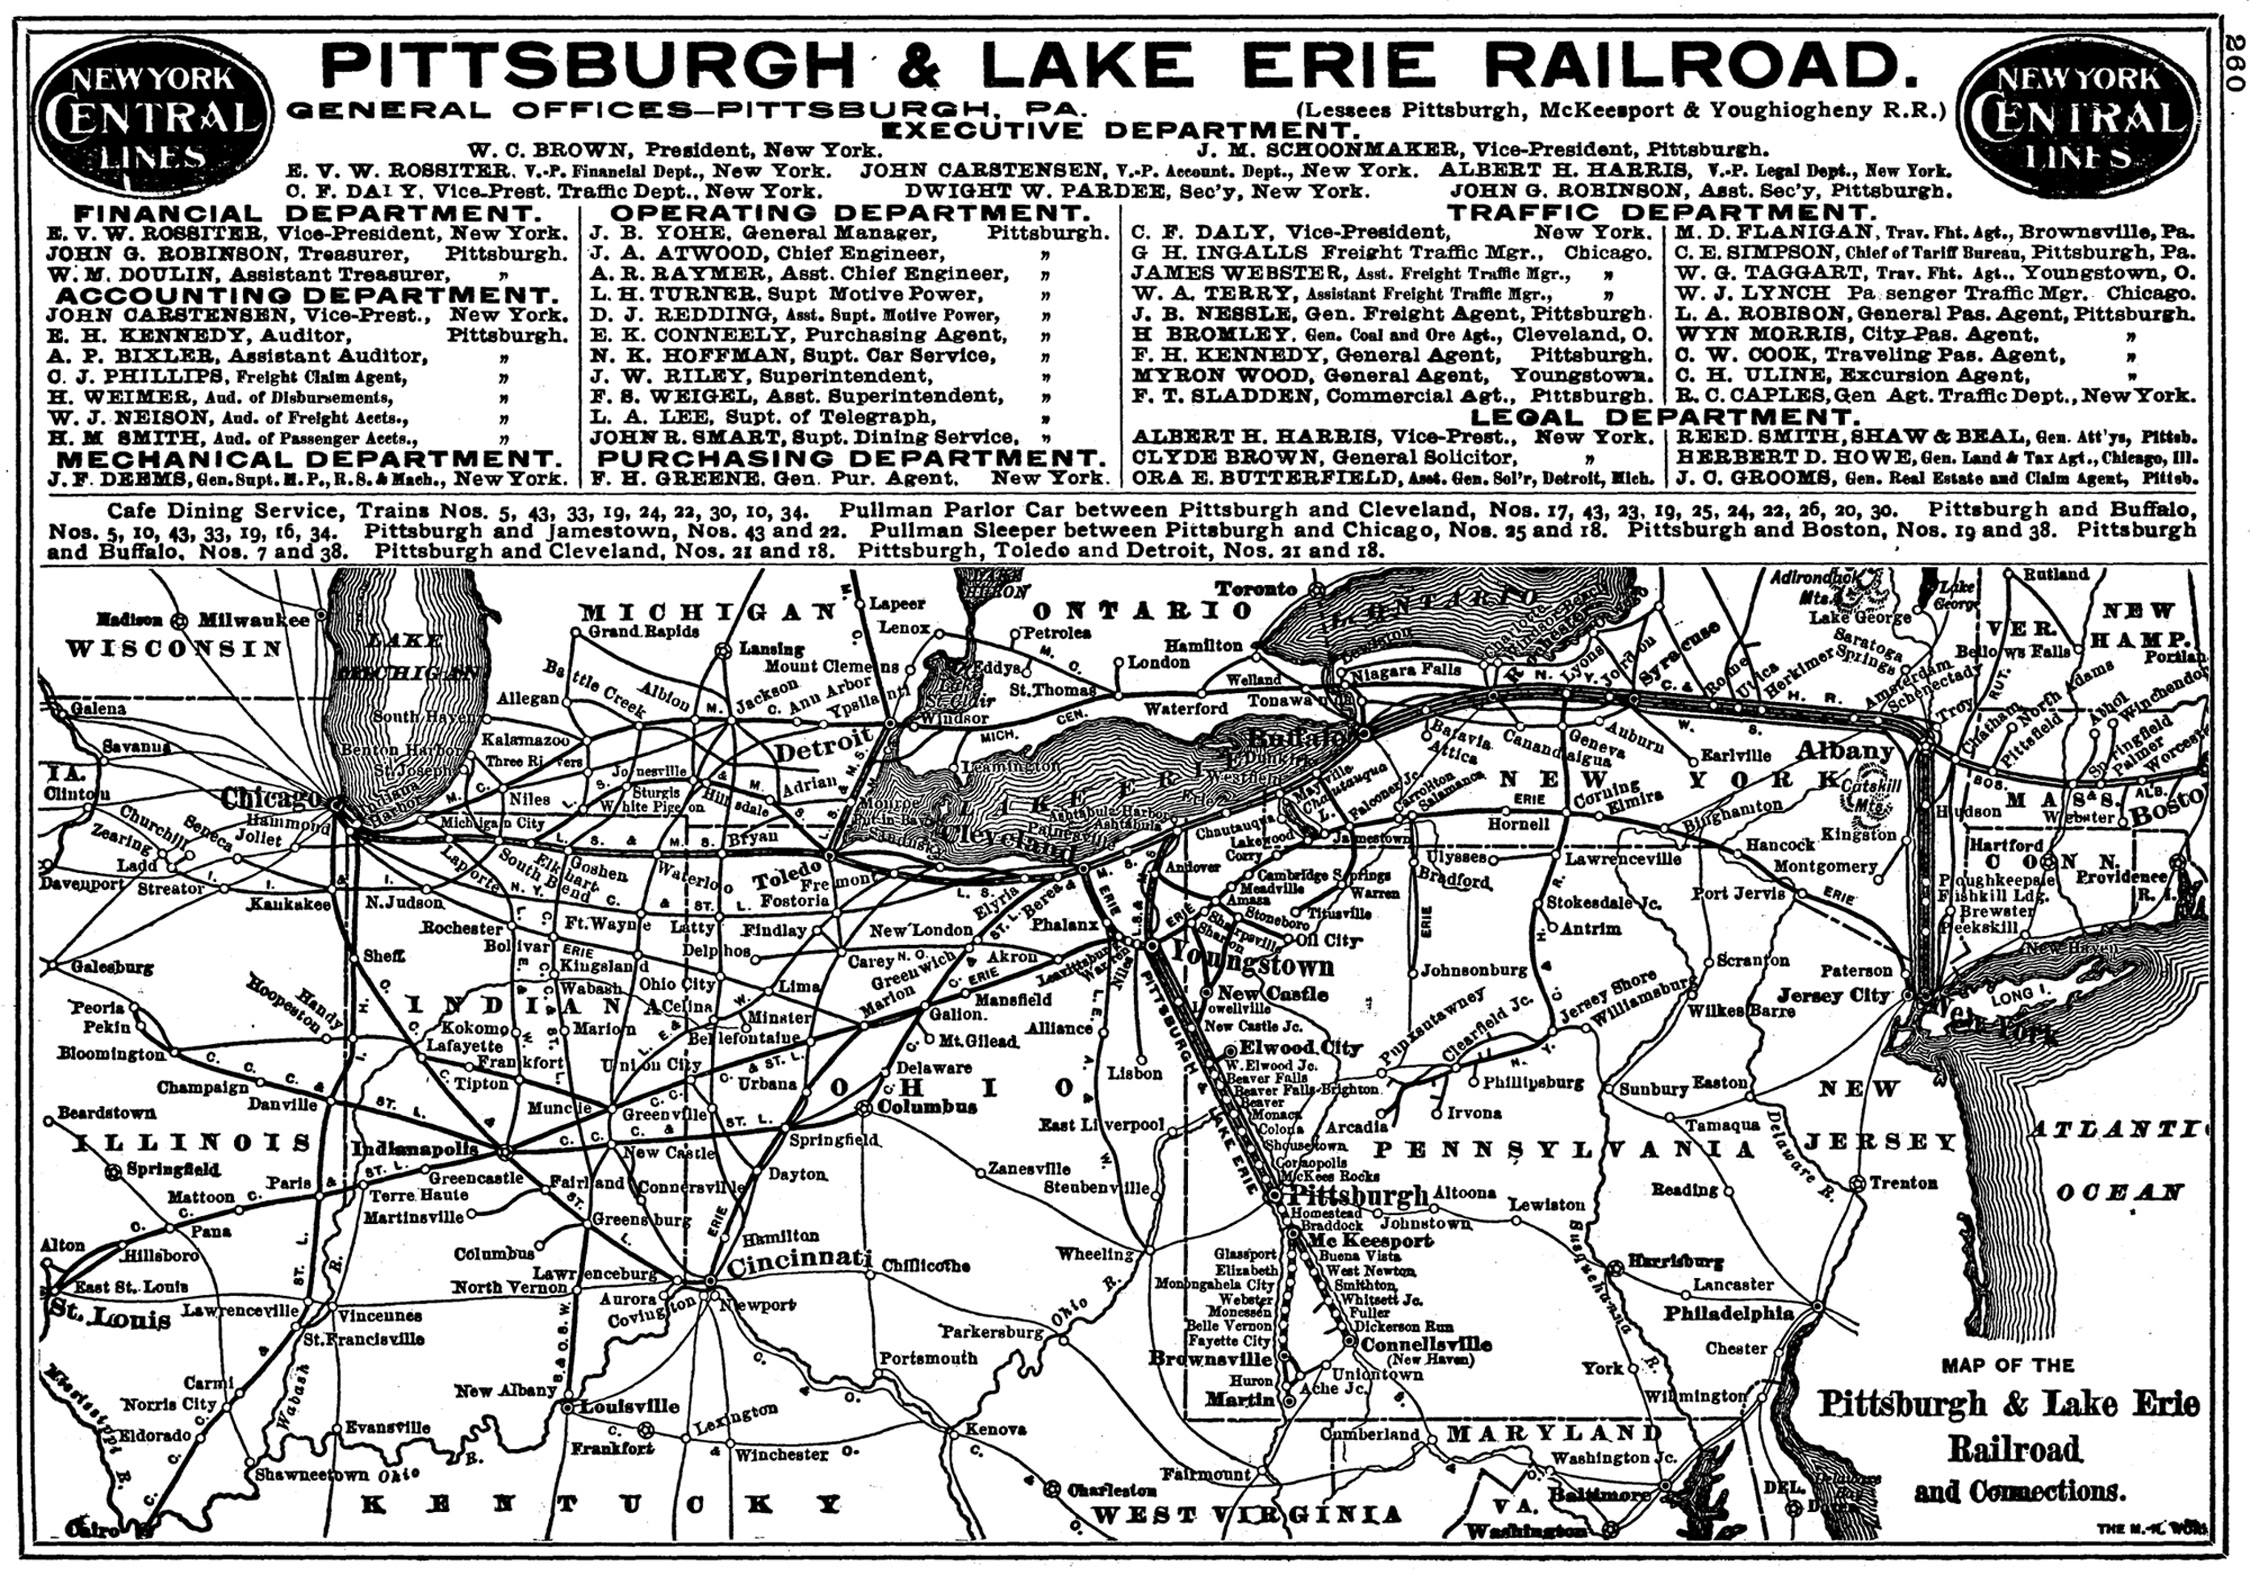 Pittsburgh and Lake Erie Railroad on new york railroad map 1870, new york ontario and western, amtrak map, new york underground railroad map, new york railroad track maps, norfolk and western railroad map, lehigh valley railroad map, baltimore and ohio railroad map, central pacific railroad map, grand trunk railroad map, bnsf railroad map, pennsylvania railroad map, csx railroad map, new york rail system map, reading railroad map, rock island railroad map, wabash railroad map, nickel plate railroad map, new york state railroad, erie railroad map,